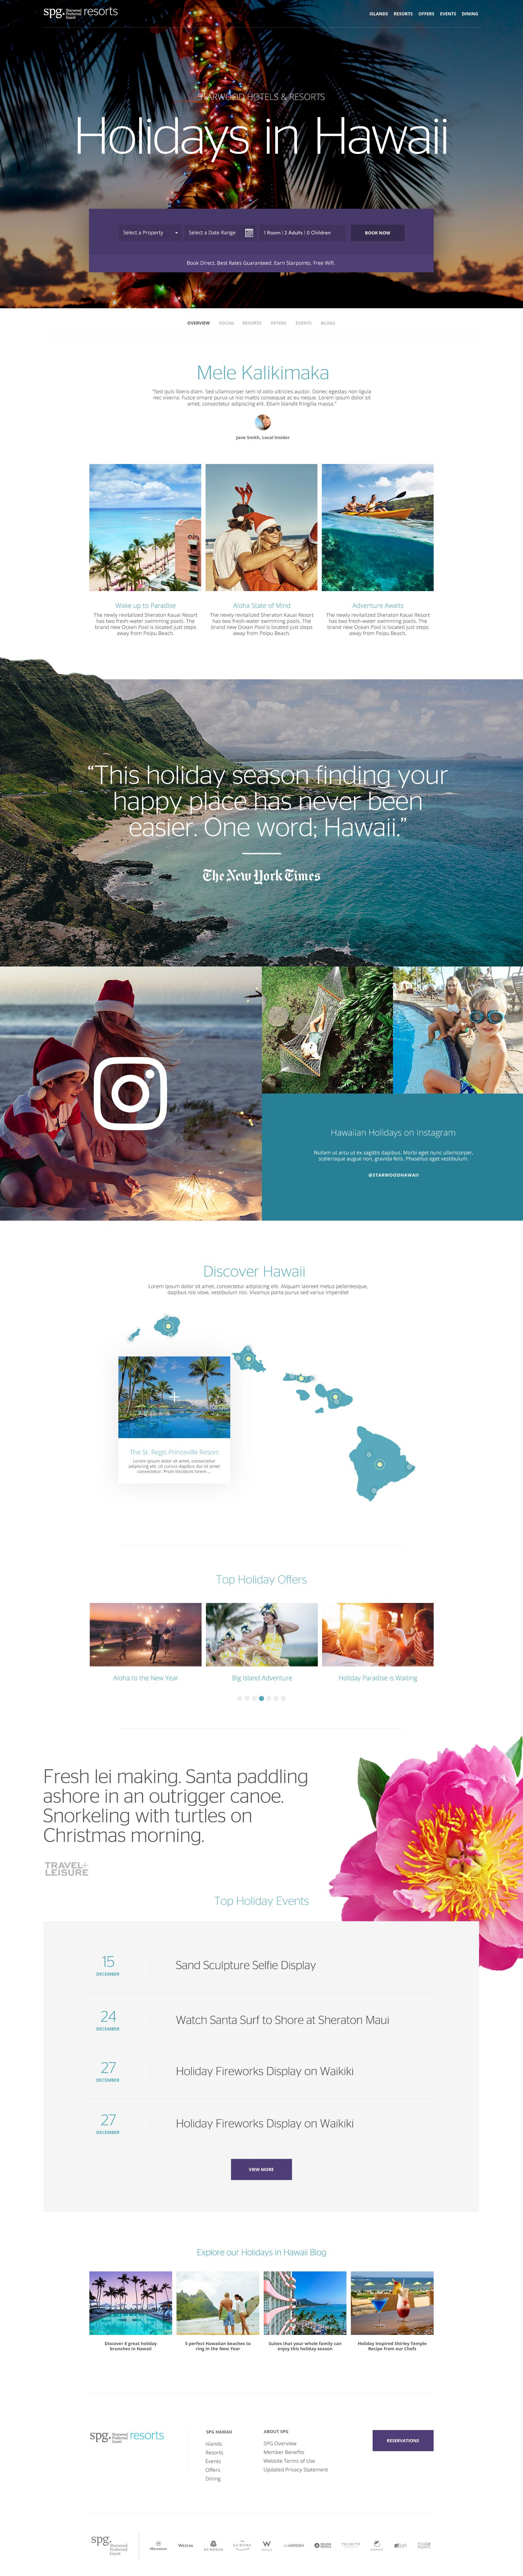 Spg Resorts Holidays In Hawaii Travel Experience Landing Page Design By Agency Dominion Travel Design Website Design Layout Site Design